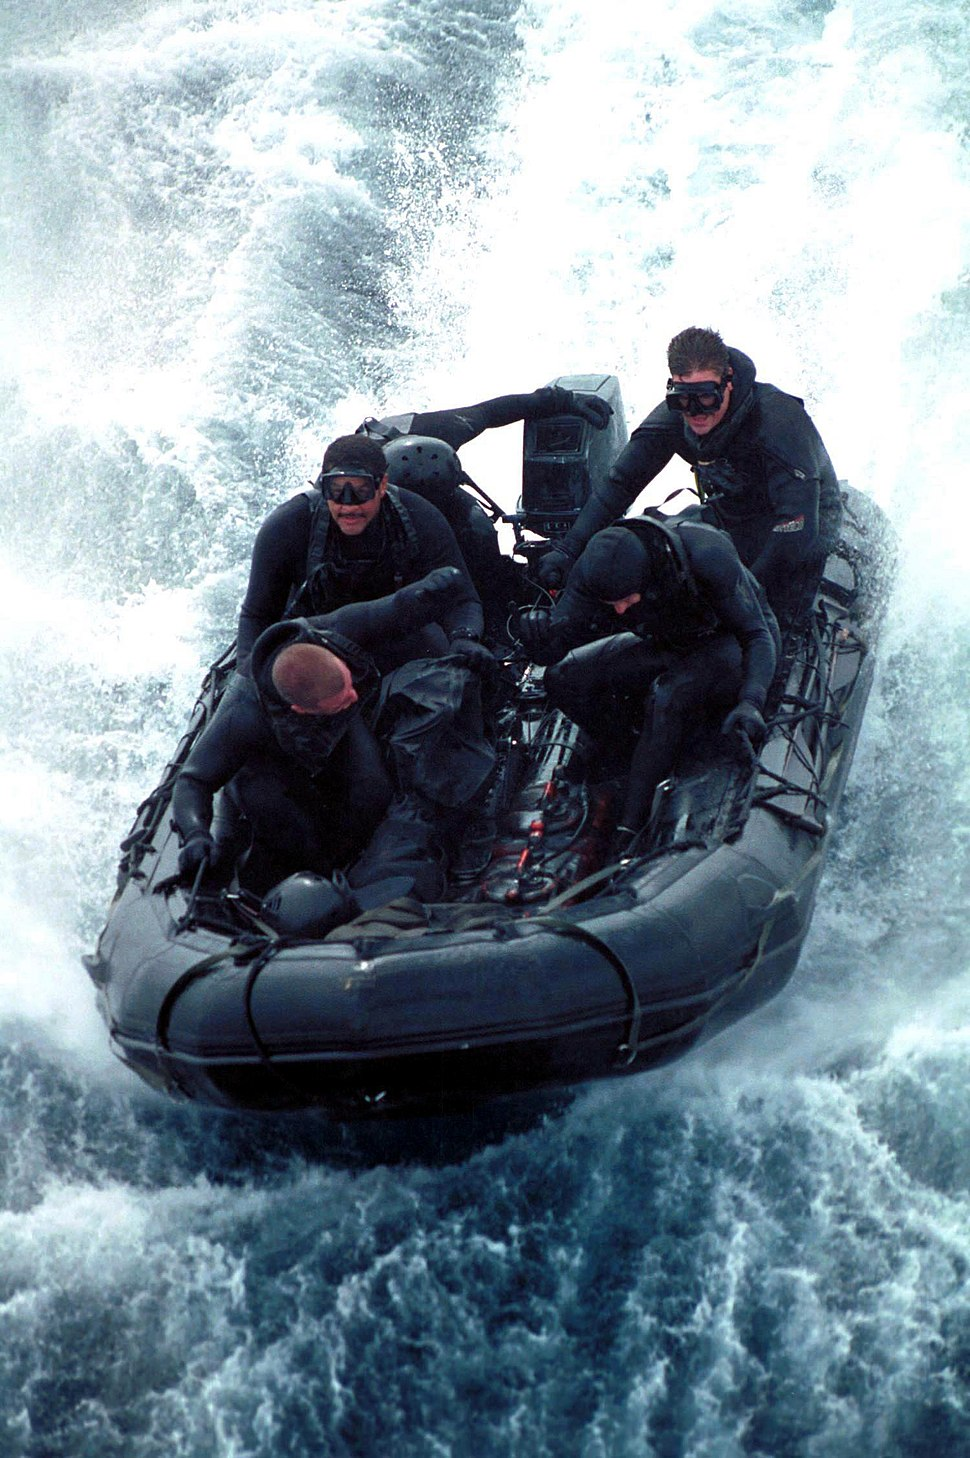 Combat Rubber Raiding Craft manned by SEAL-Team 5.jpg